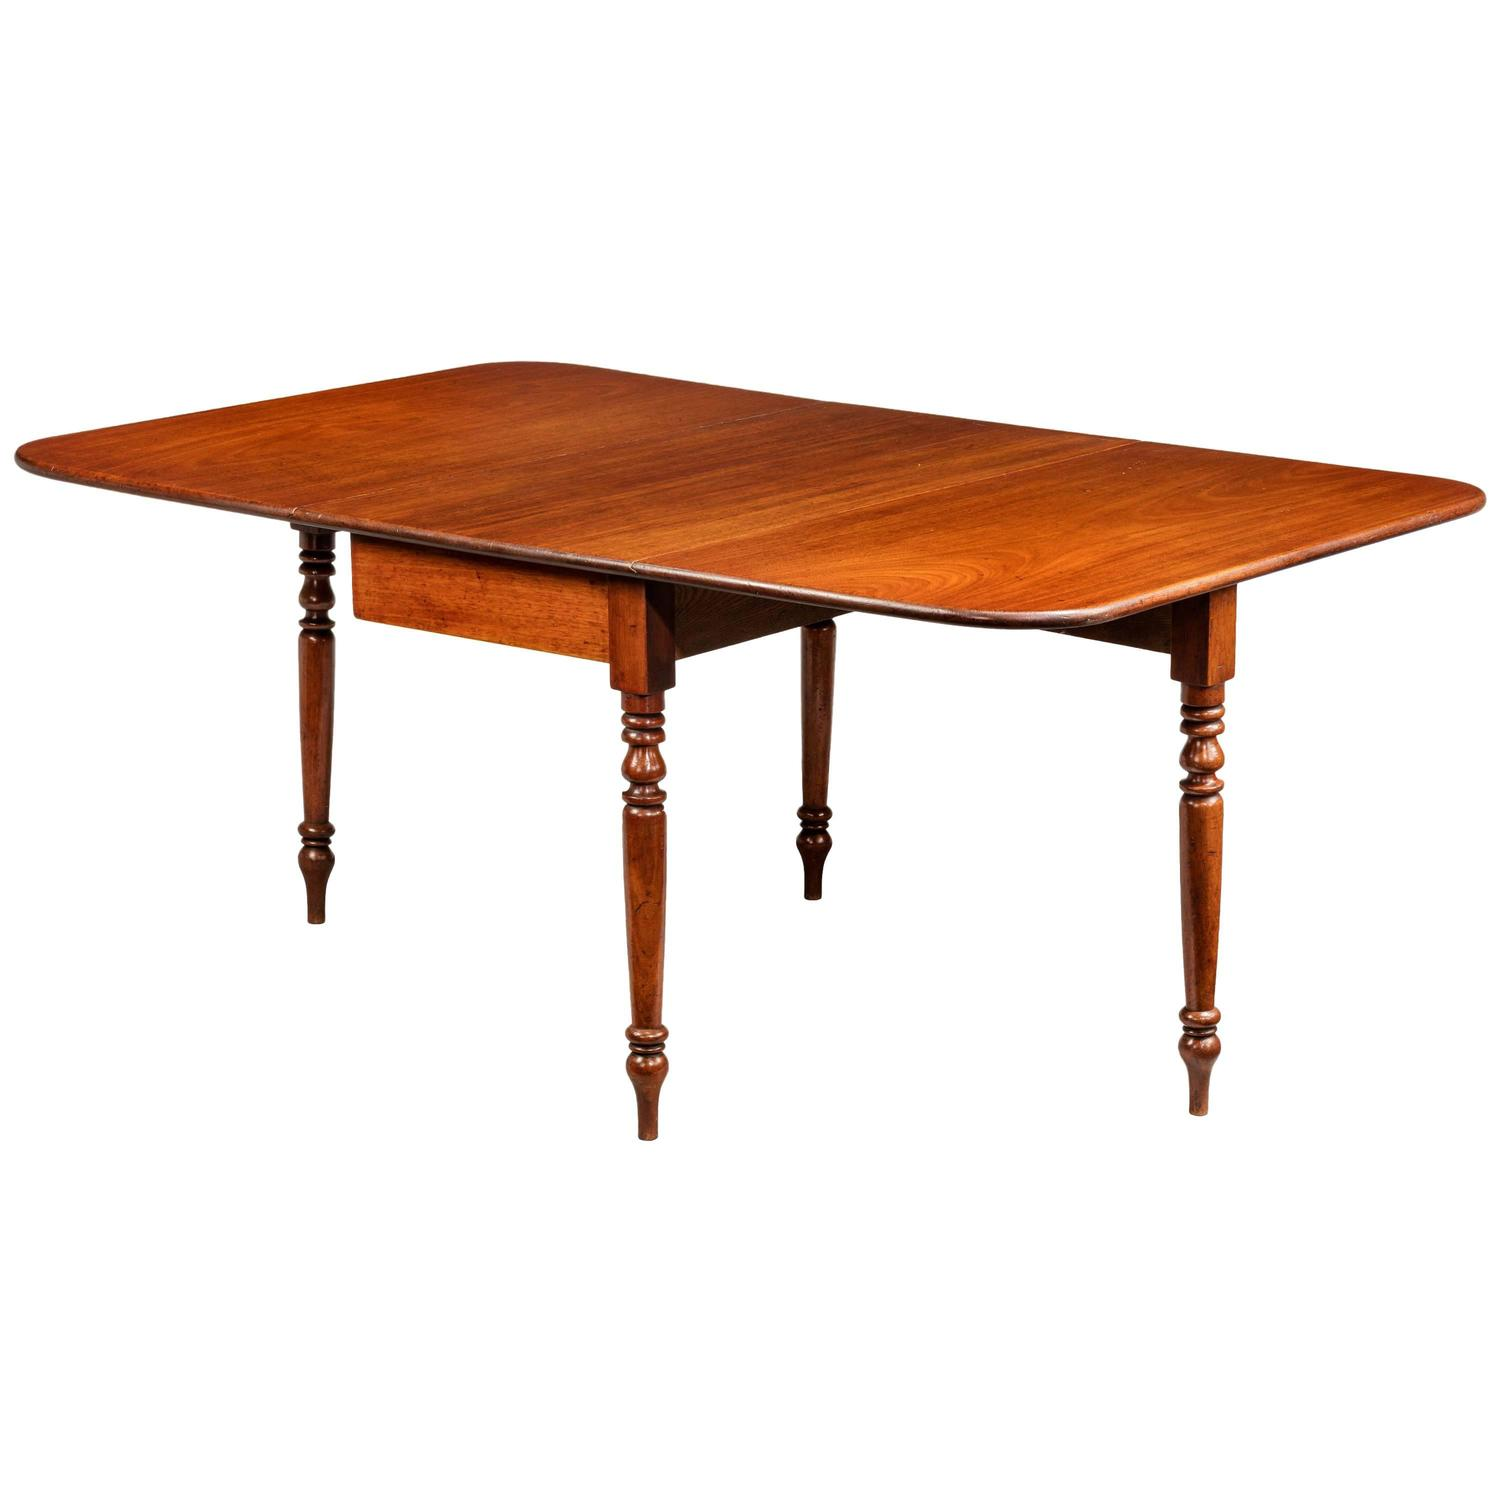 Regency period drop leaf dining table for sale at 1stdibs for 3 leaf dining room tables